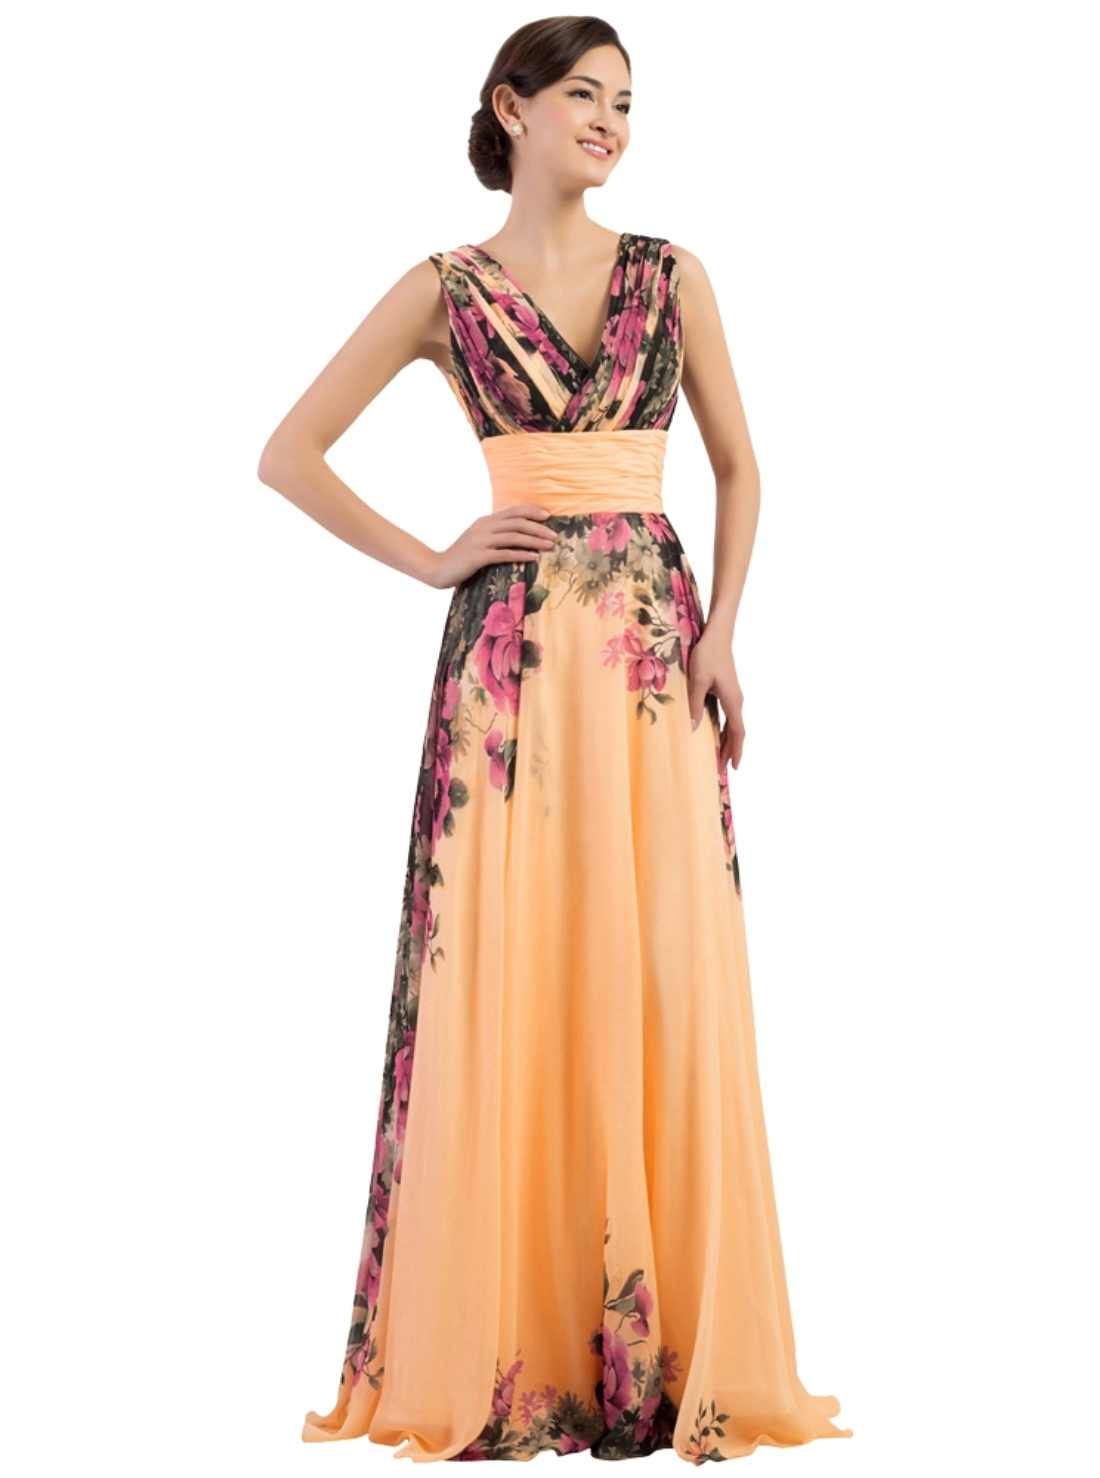 Sleeveless Flower Pattern Floral Print Chiffon Evening Dress Party Gown Long Prom Dresses